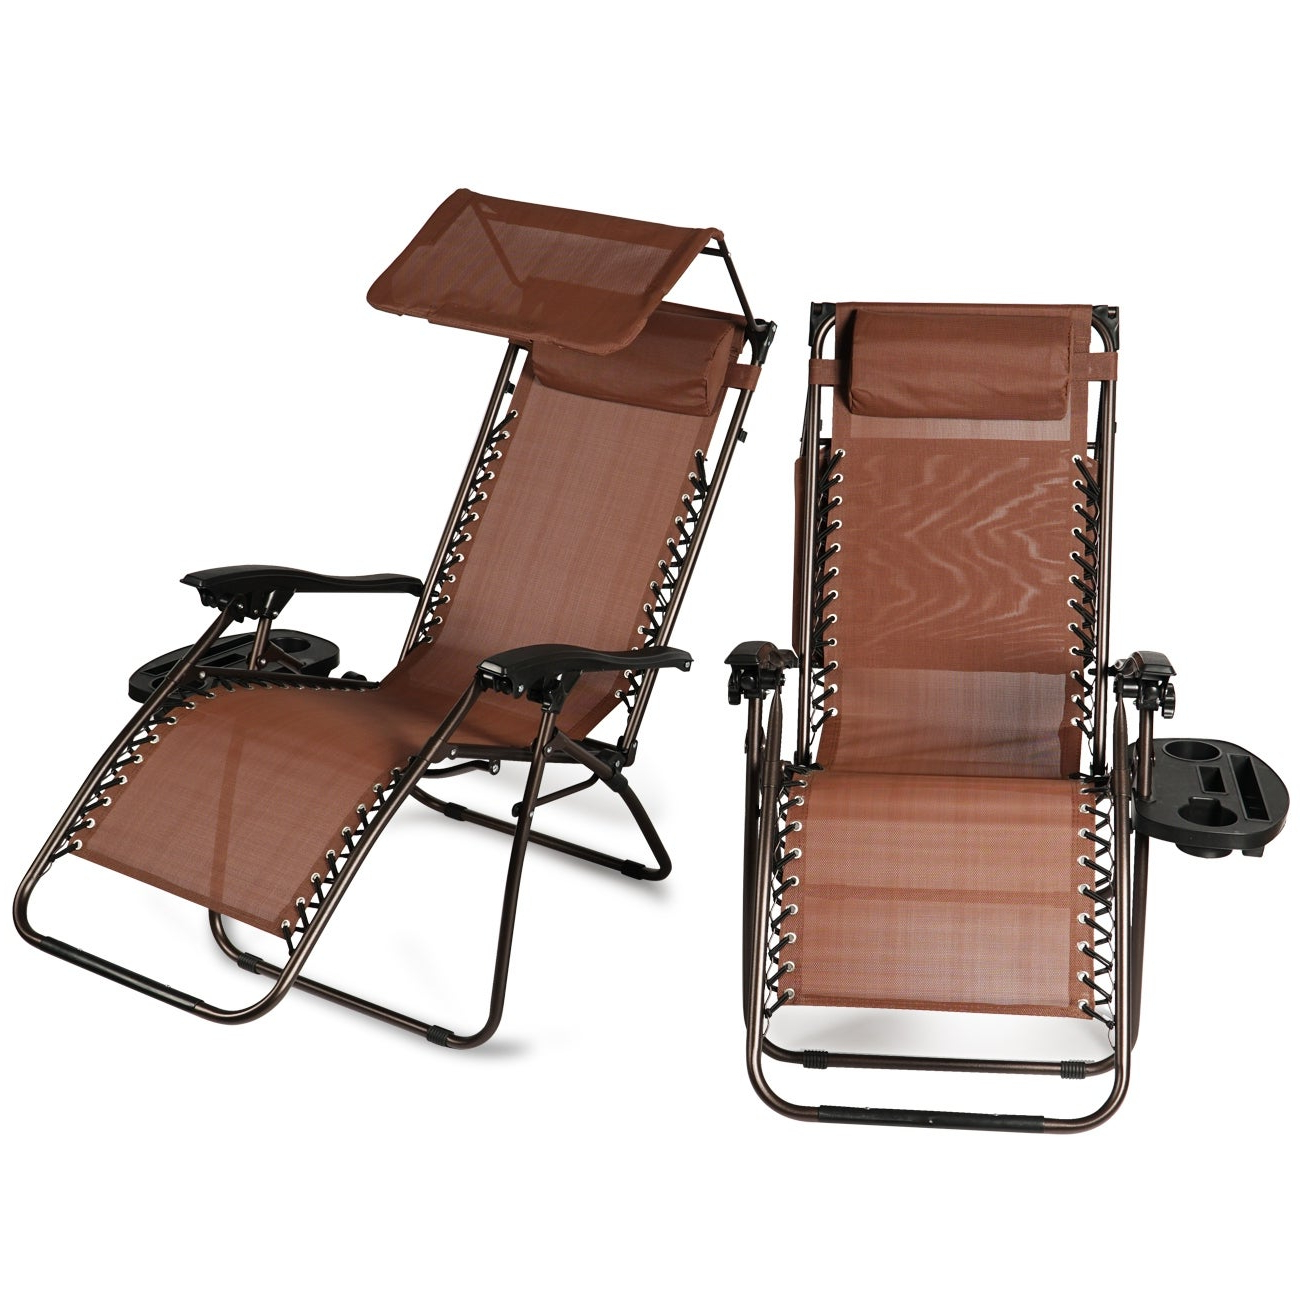 Most Up To Date Double Reclining Lounge Chairs With Canopy For Belleze 2 Pack Zero Gravity Chairs Canopy Shade Headrest Pillows Recliner With Tray, Brown (View 13 of 25)